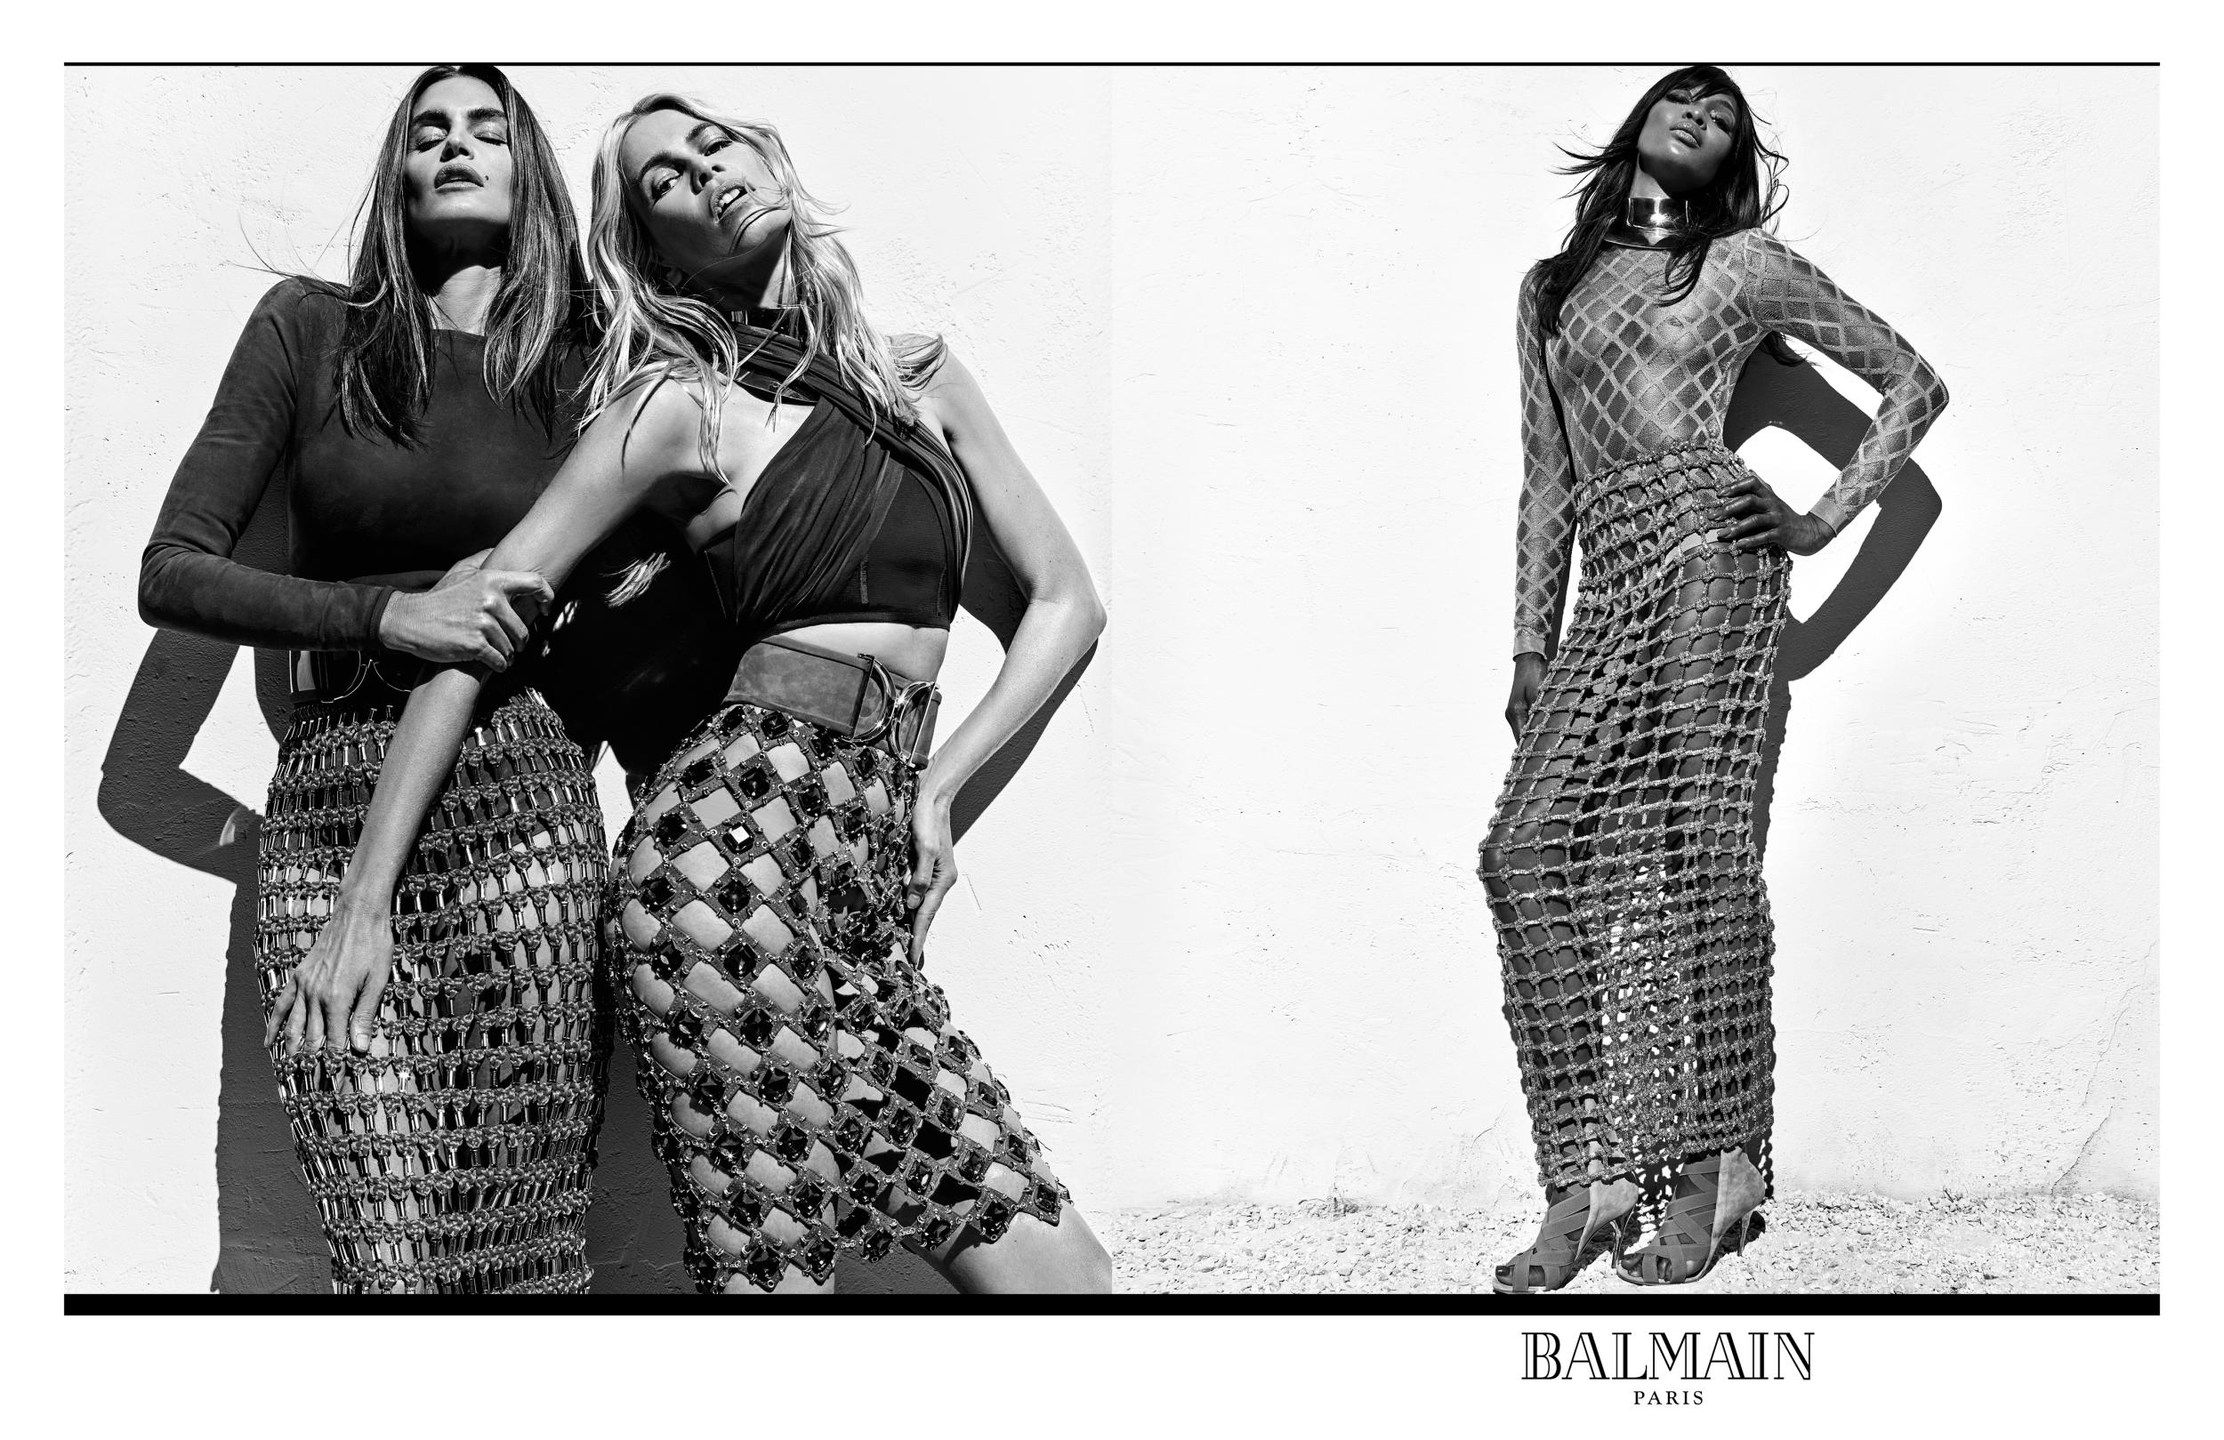 ExposureNY - News - Honey for Balmain